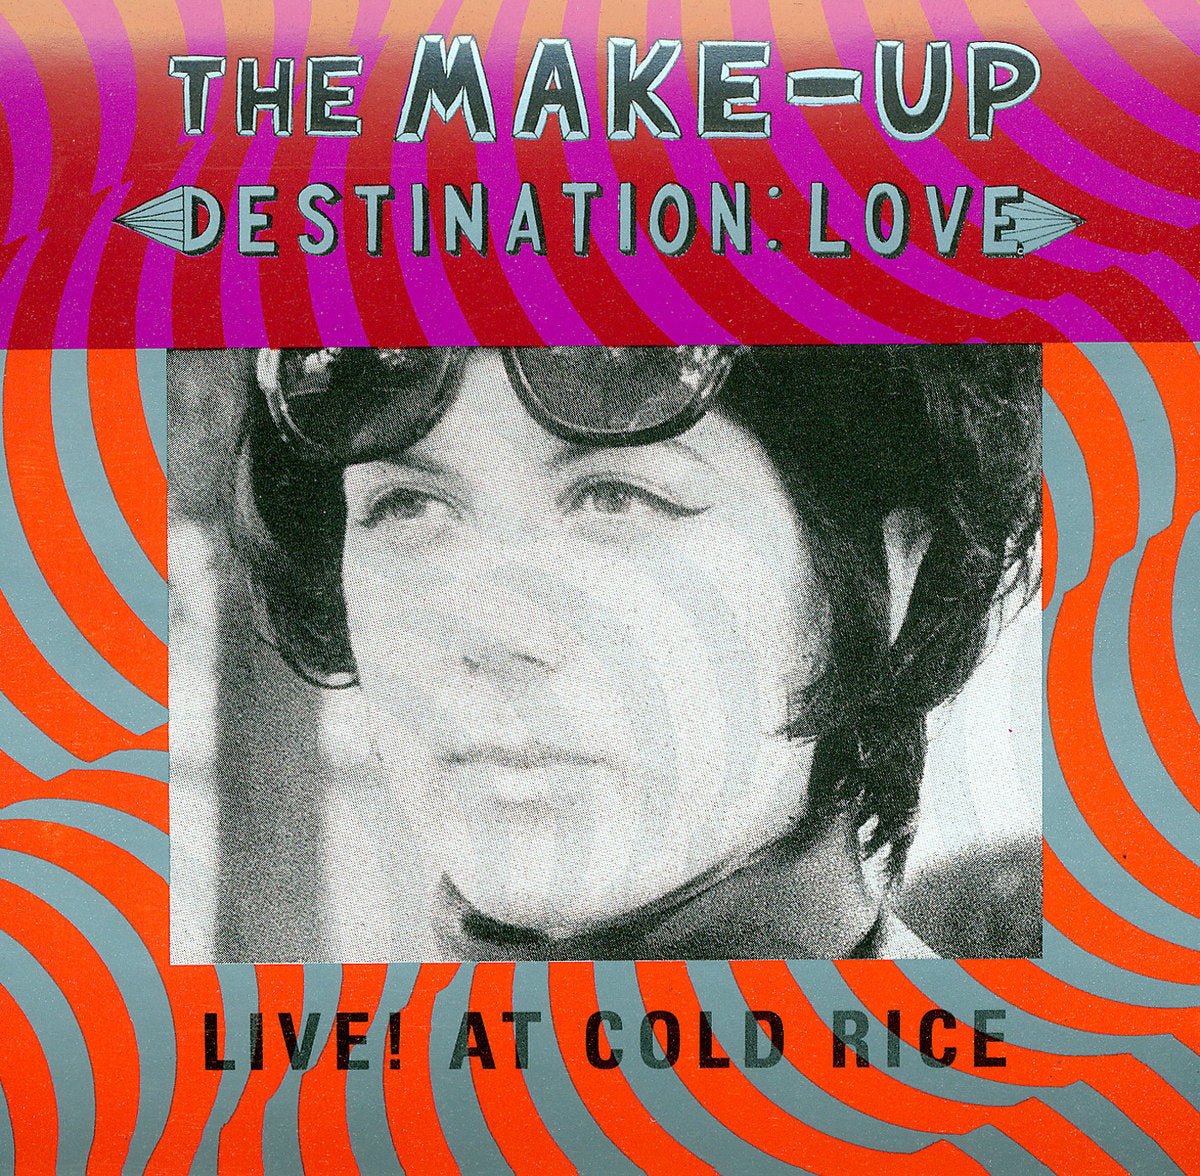 The Make-Up - Destination Love Live! At Cold Rice LP